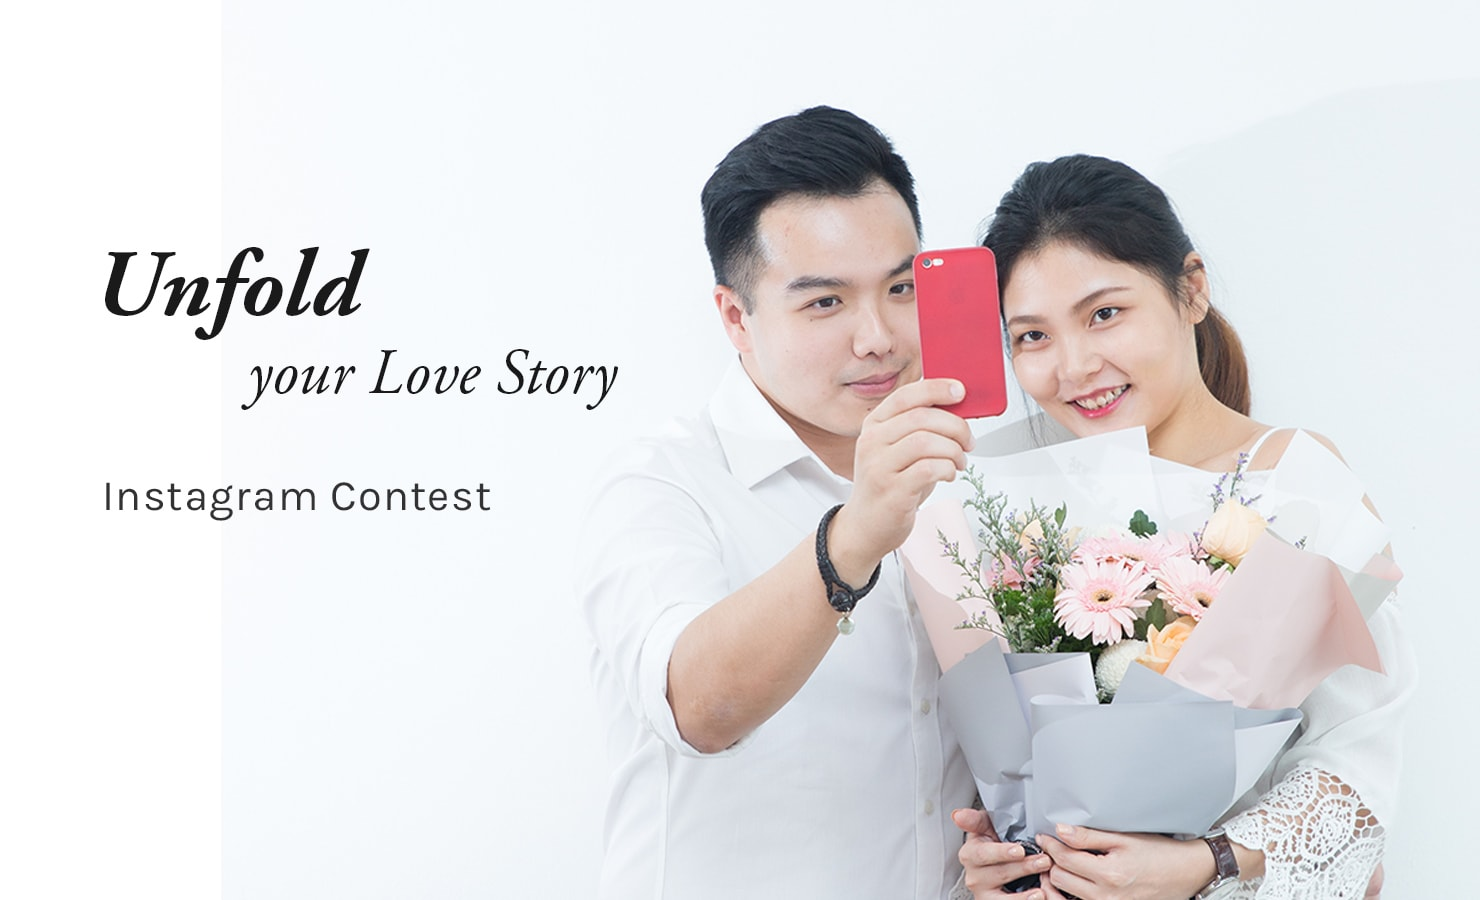 unfold-your-love-story-instagram-contest-blog